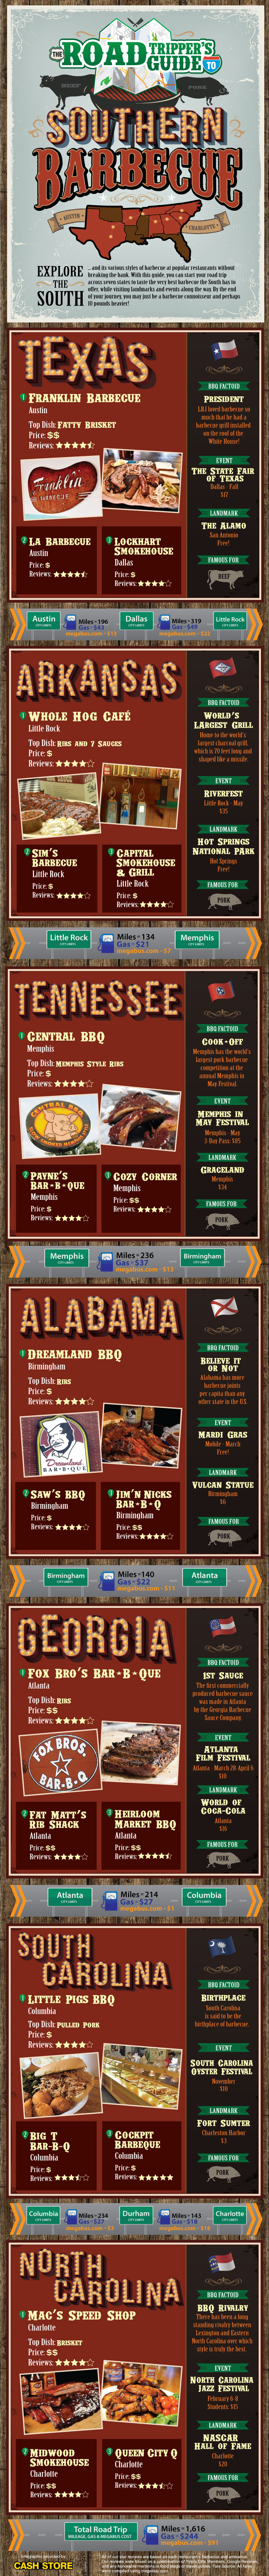 The Road-Tripper's Guide to Southern Barbecue